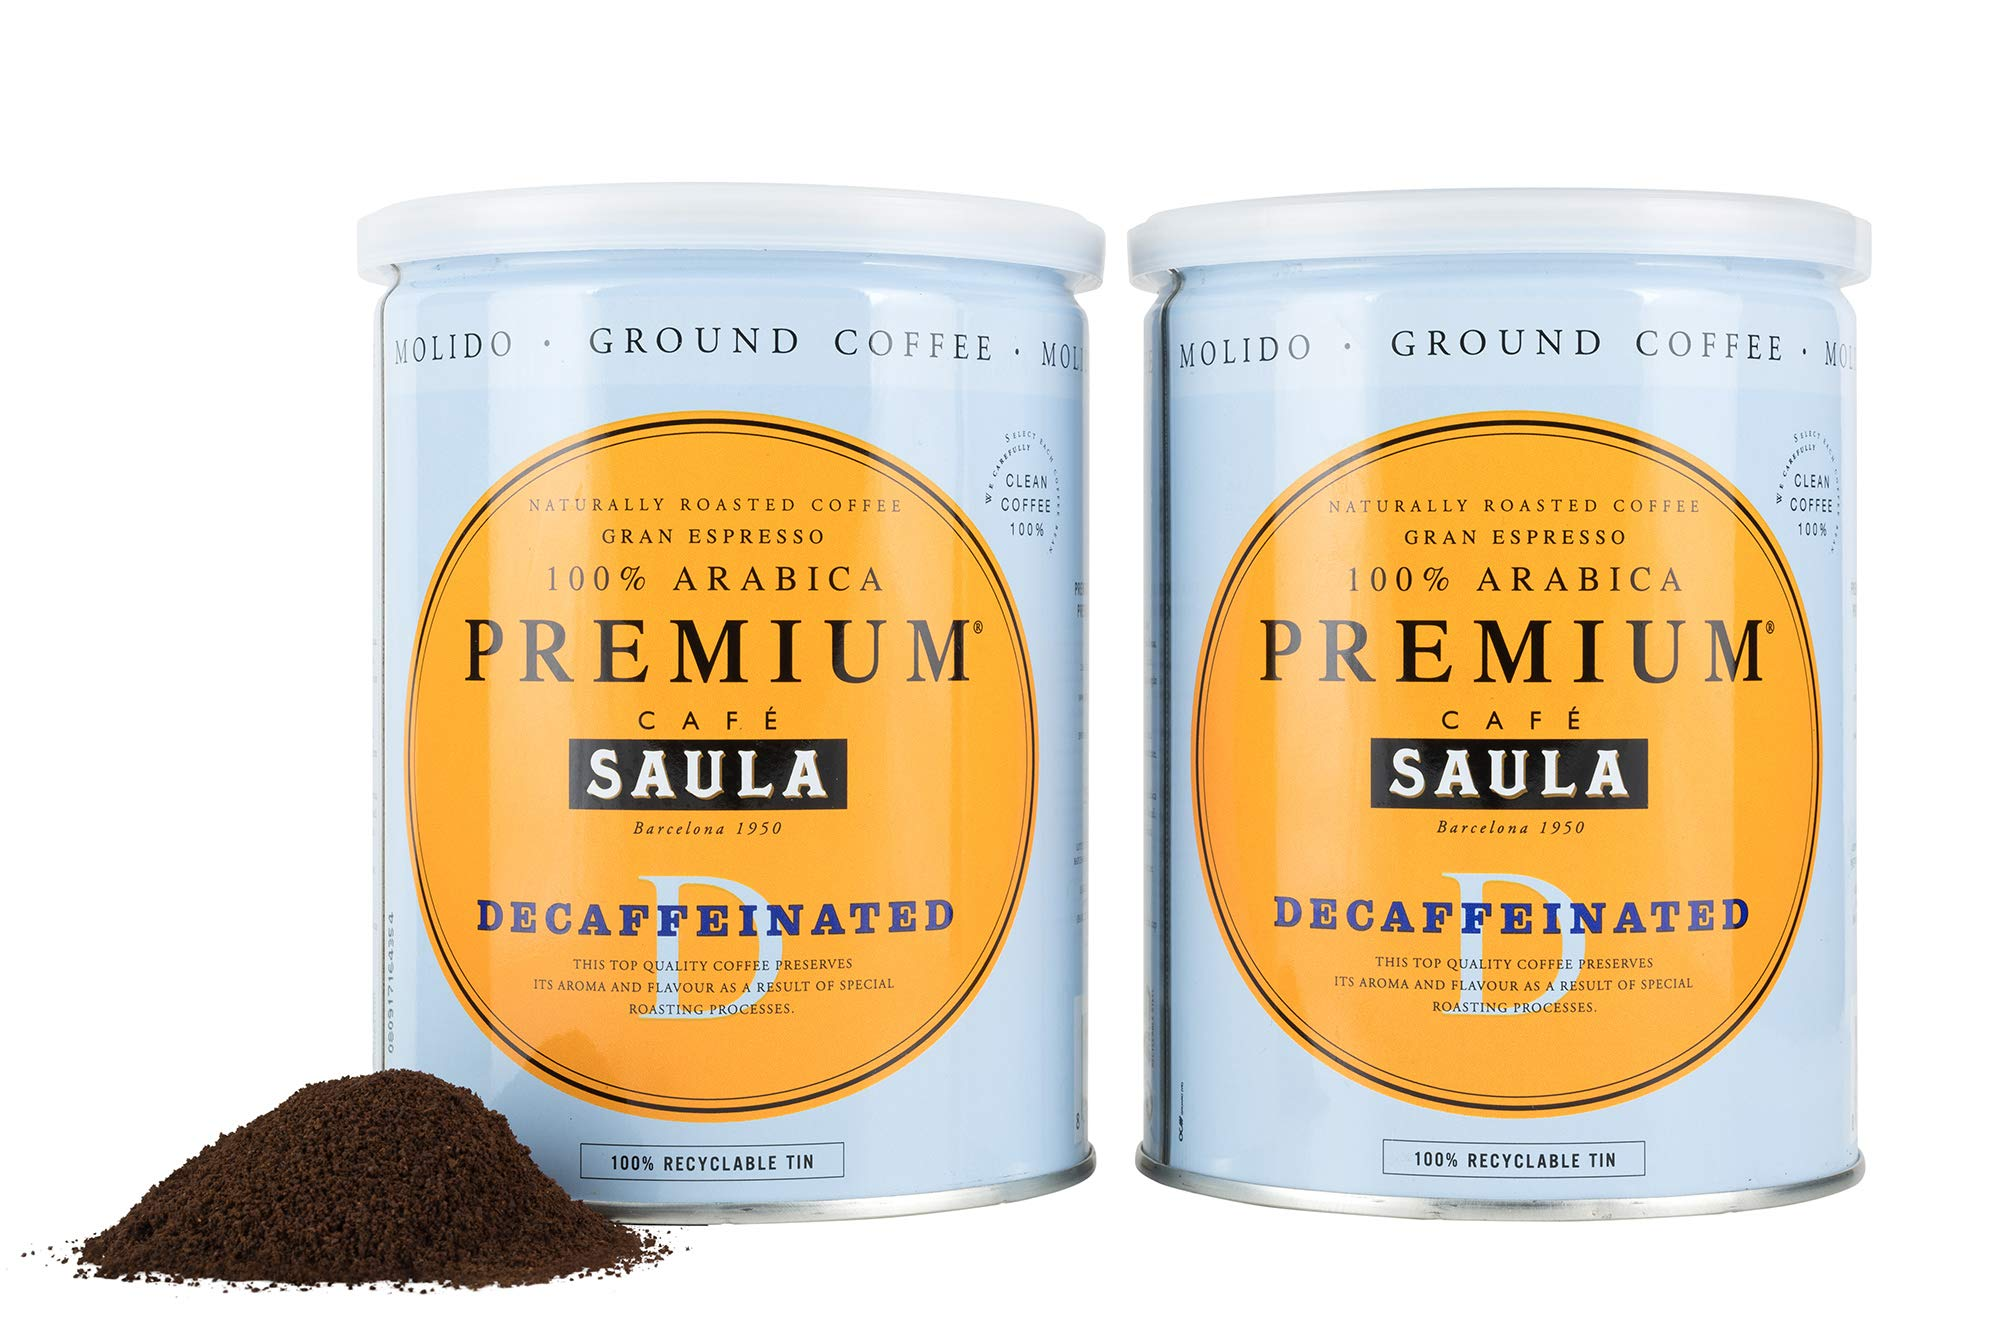 Premium Decaffeinated Ground Coffee – Café Saula's Award Winning 100% Arabica Spanish Espresso Blend 500g (2X 250g)